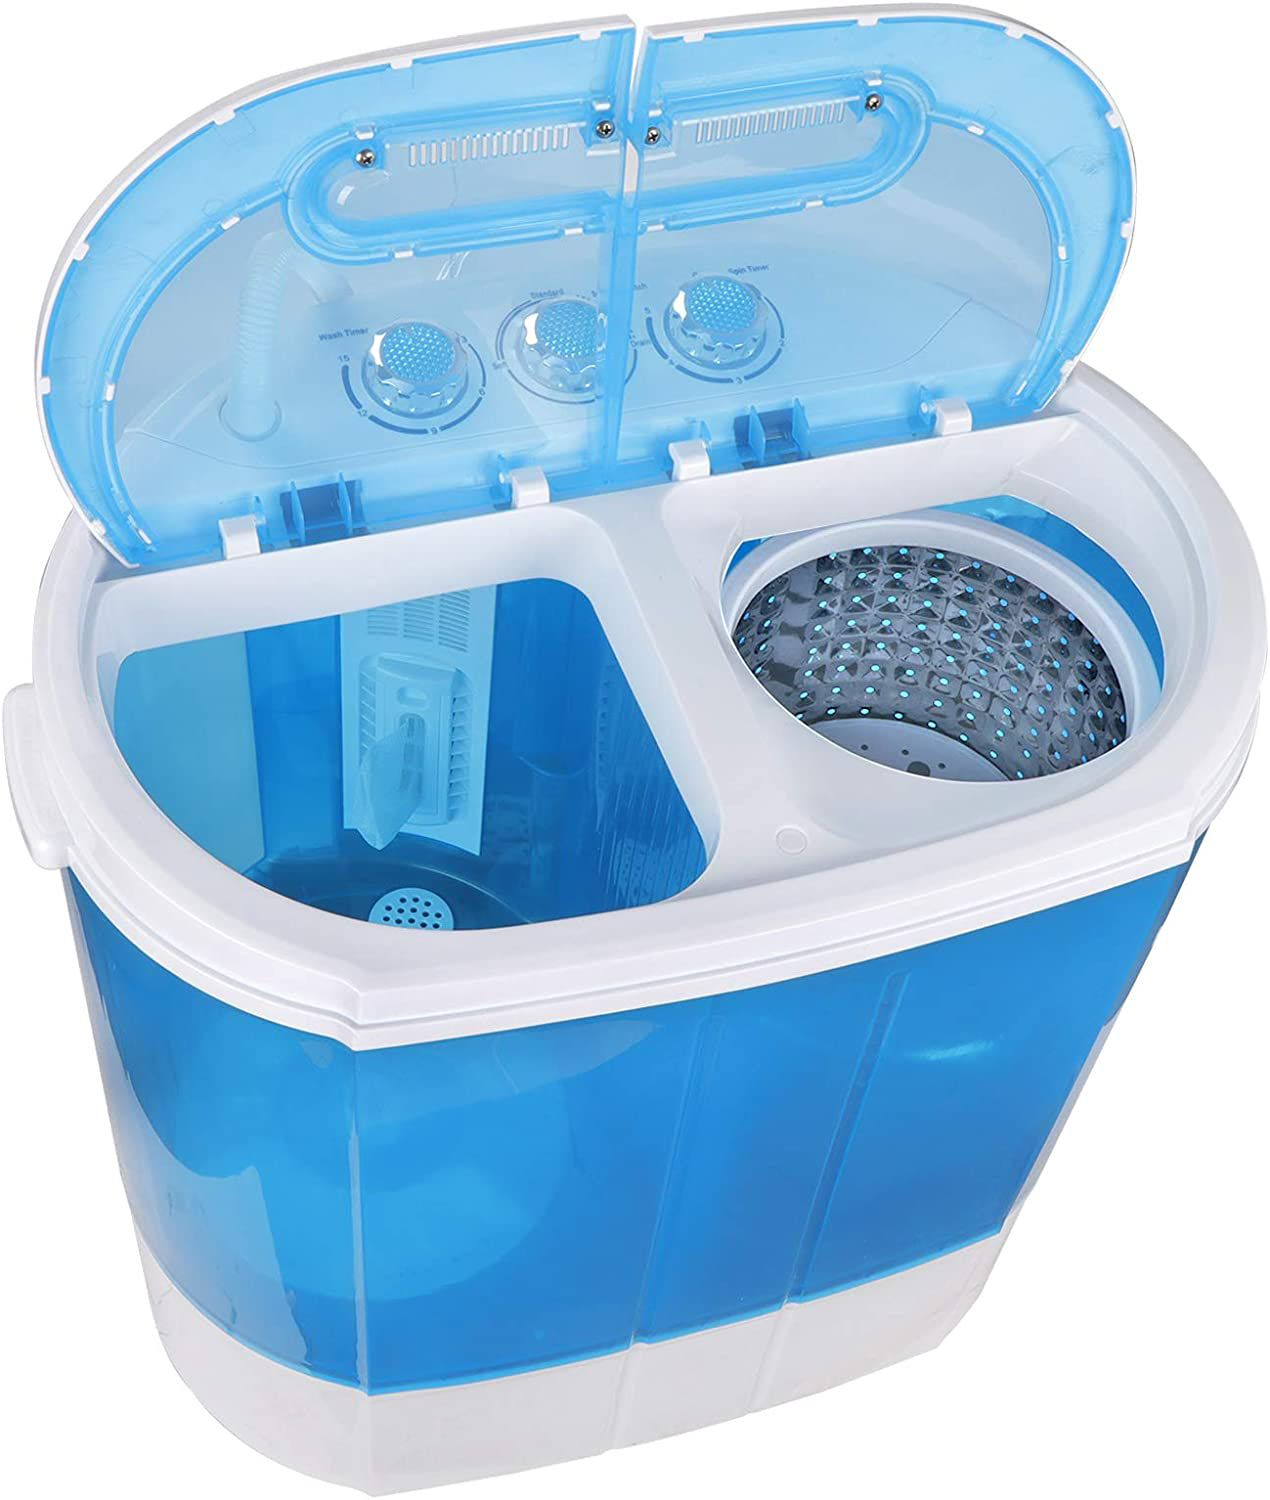 ZenStyle Portable Washer Compact Twin Tub